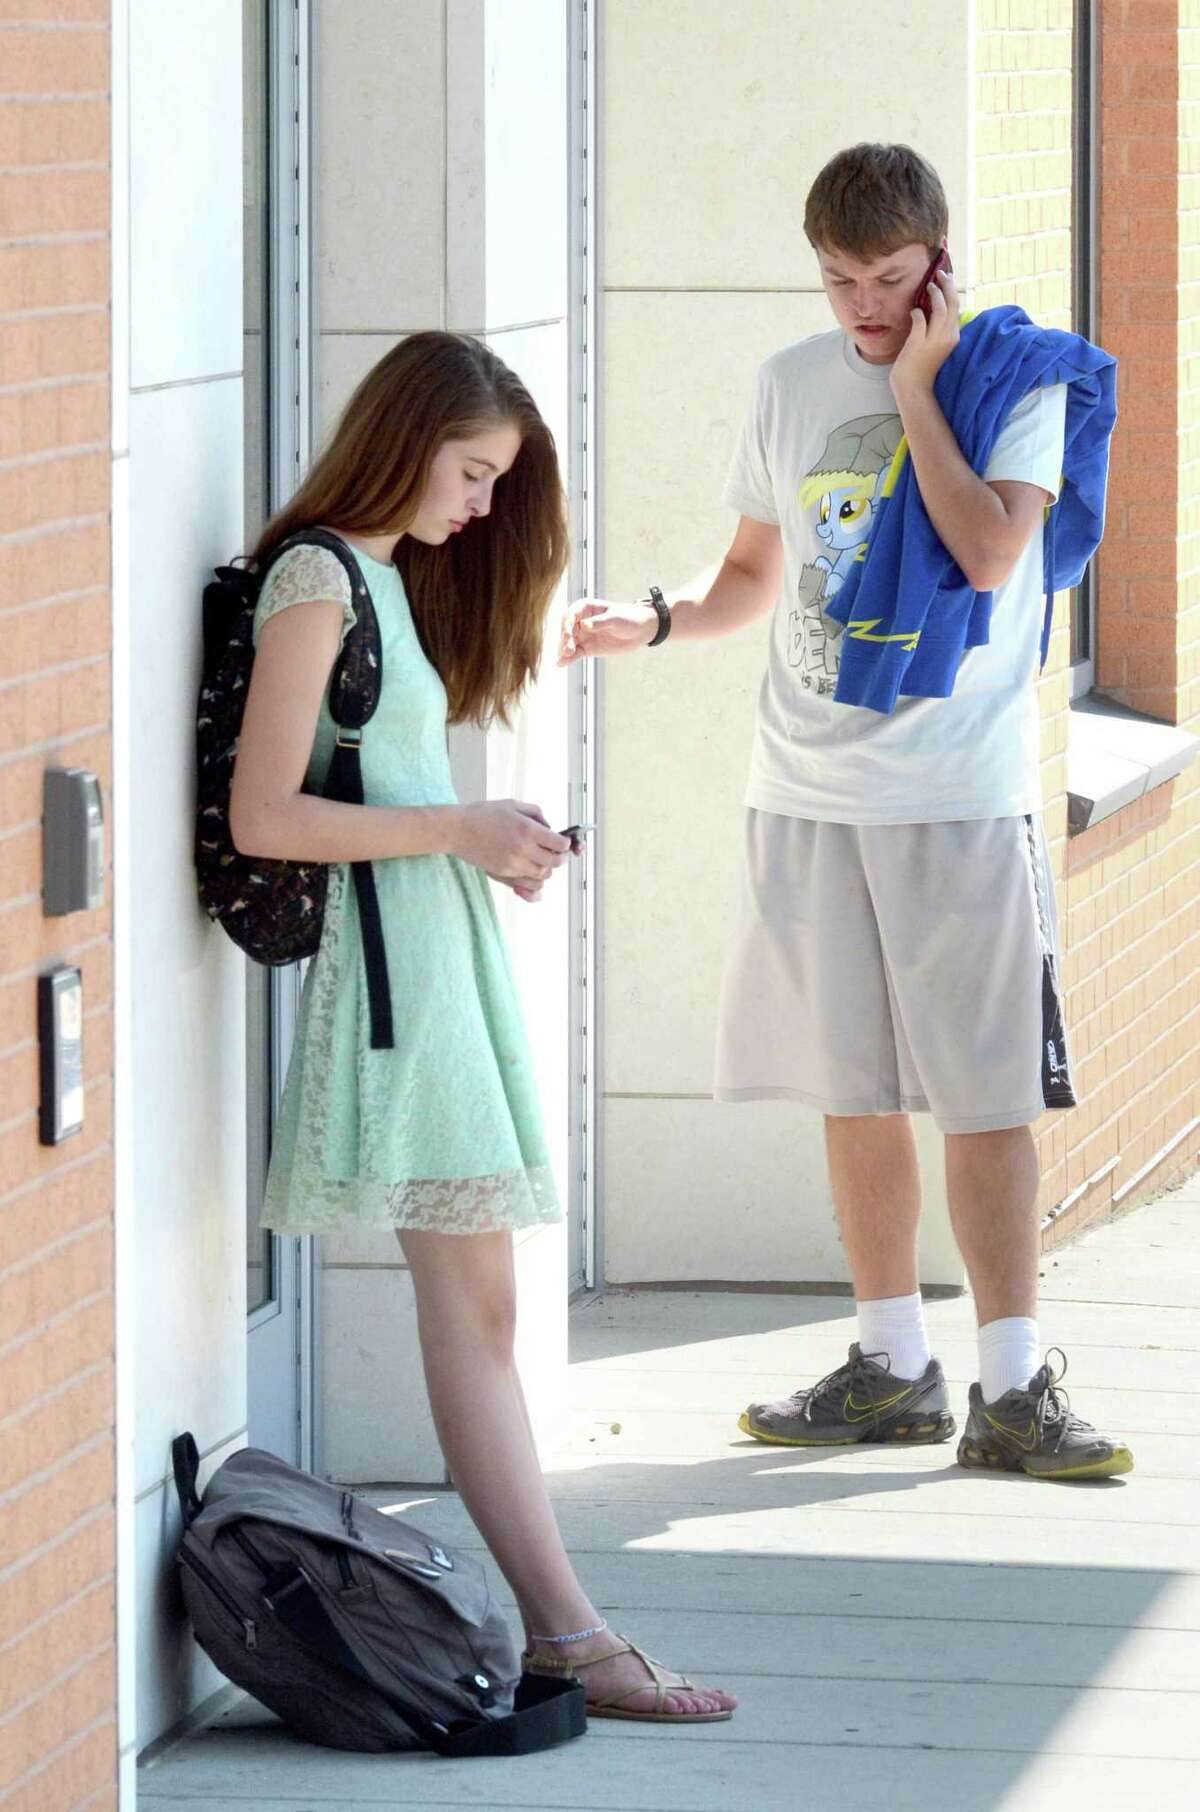 Coop High School Tenth graders Ilana Zsigmond and Tyler Ambrose, both of Hamden use their phones after school August 31, 2012 on College Ave in New Haven. vmWilliams